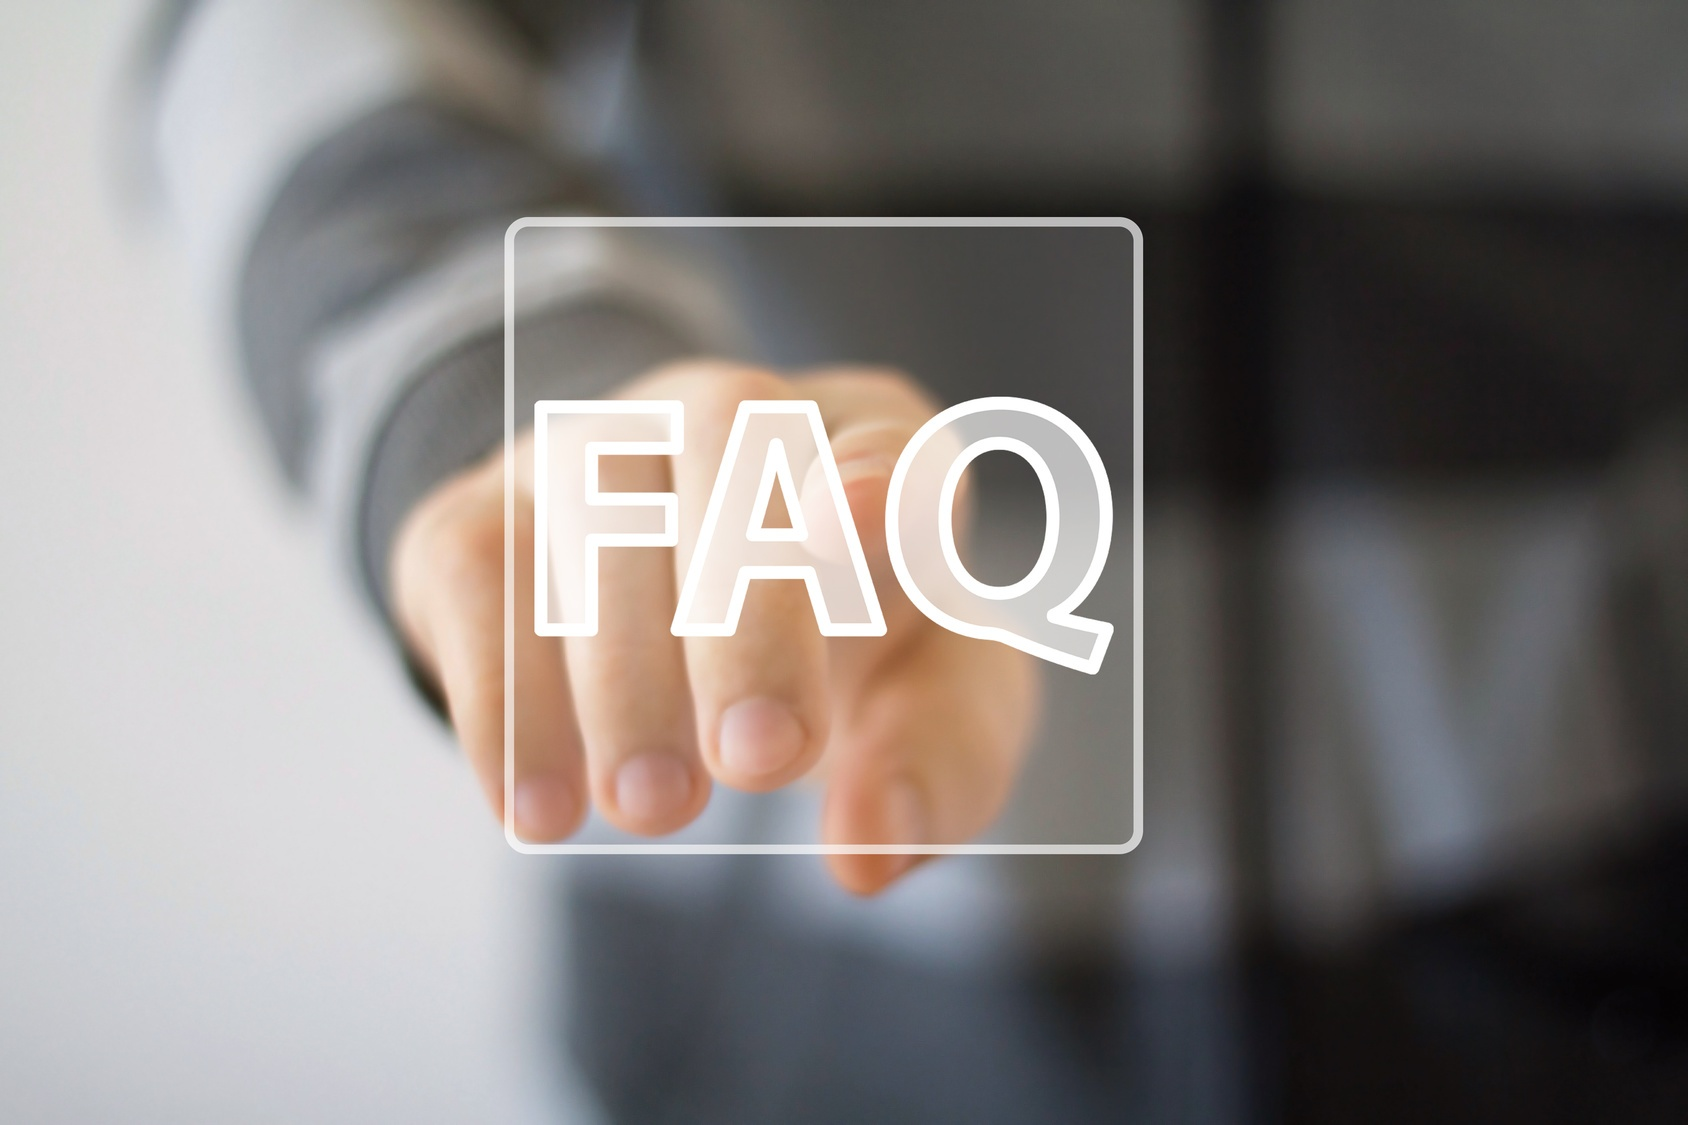 FAQs: A Not So Secret Weapon for Sales